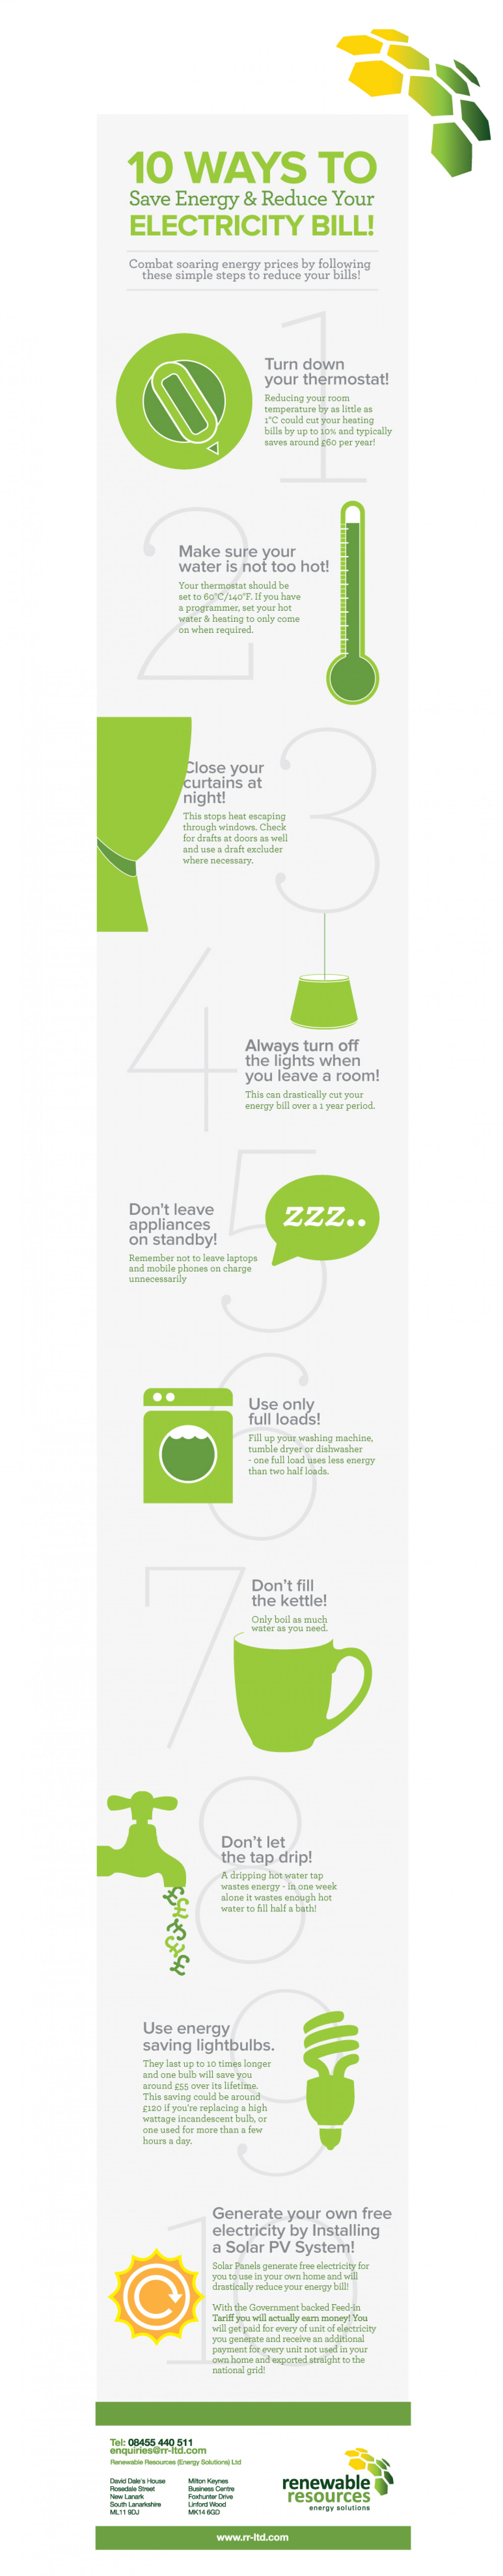 10 Ways To Save Energy & Reduce Your Electricity Bill Infographic